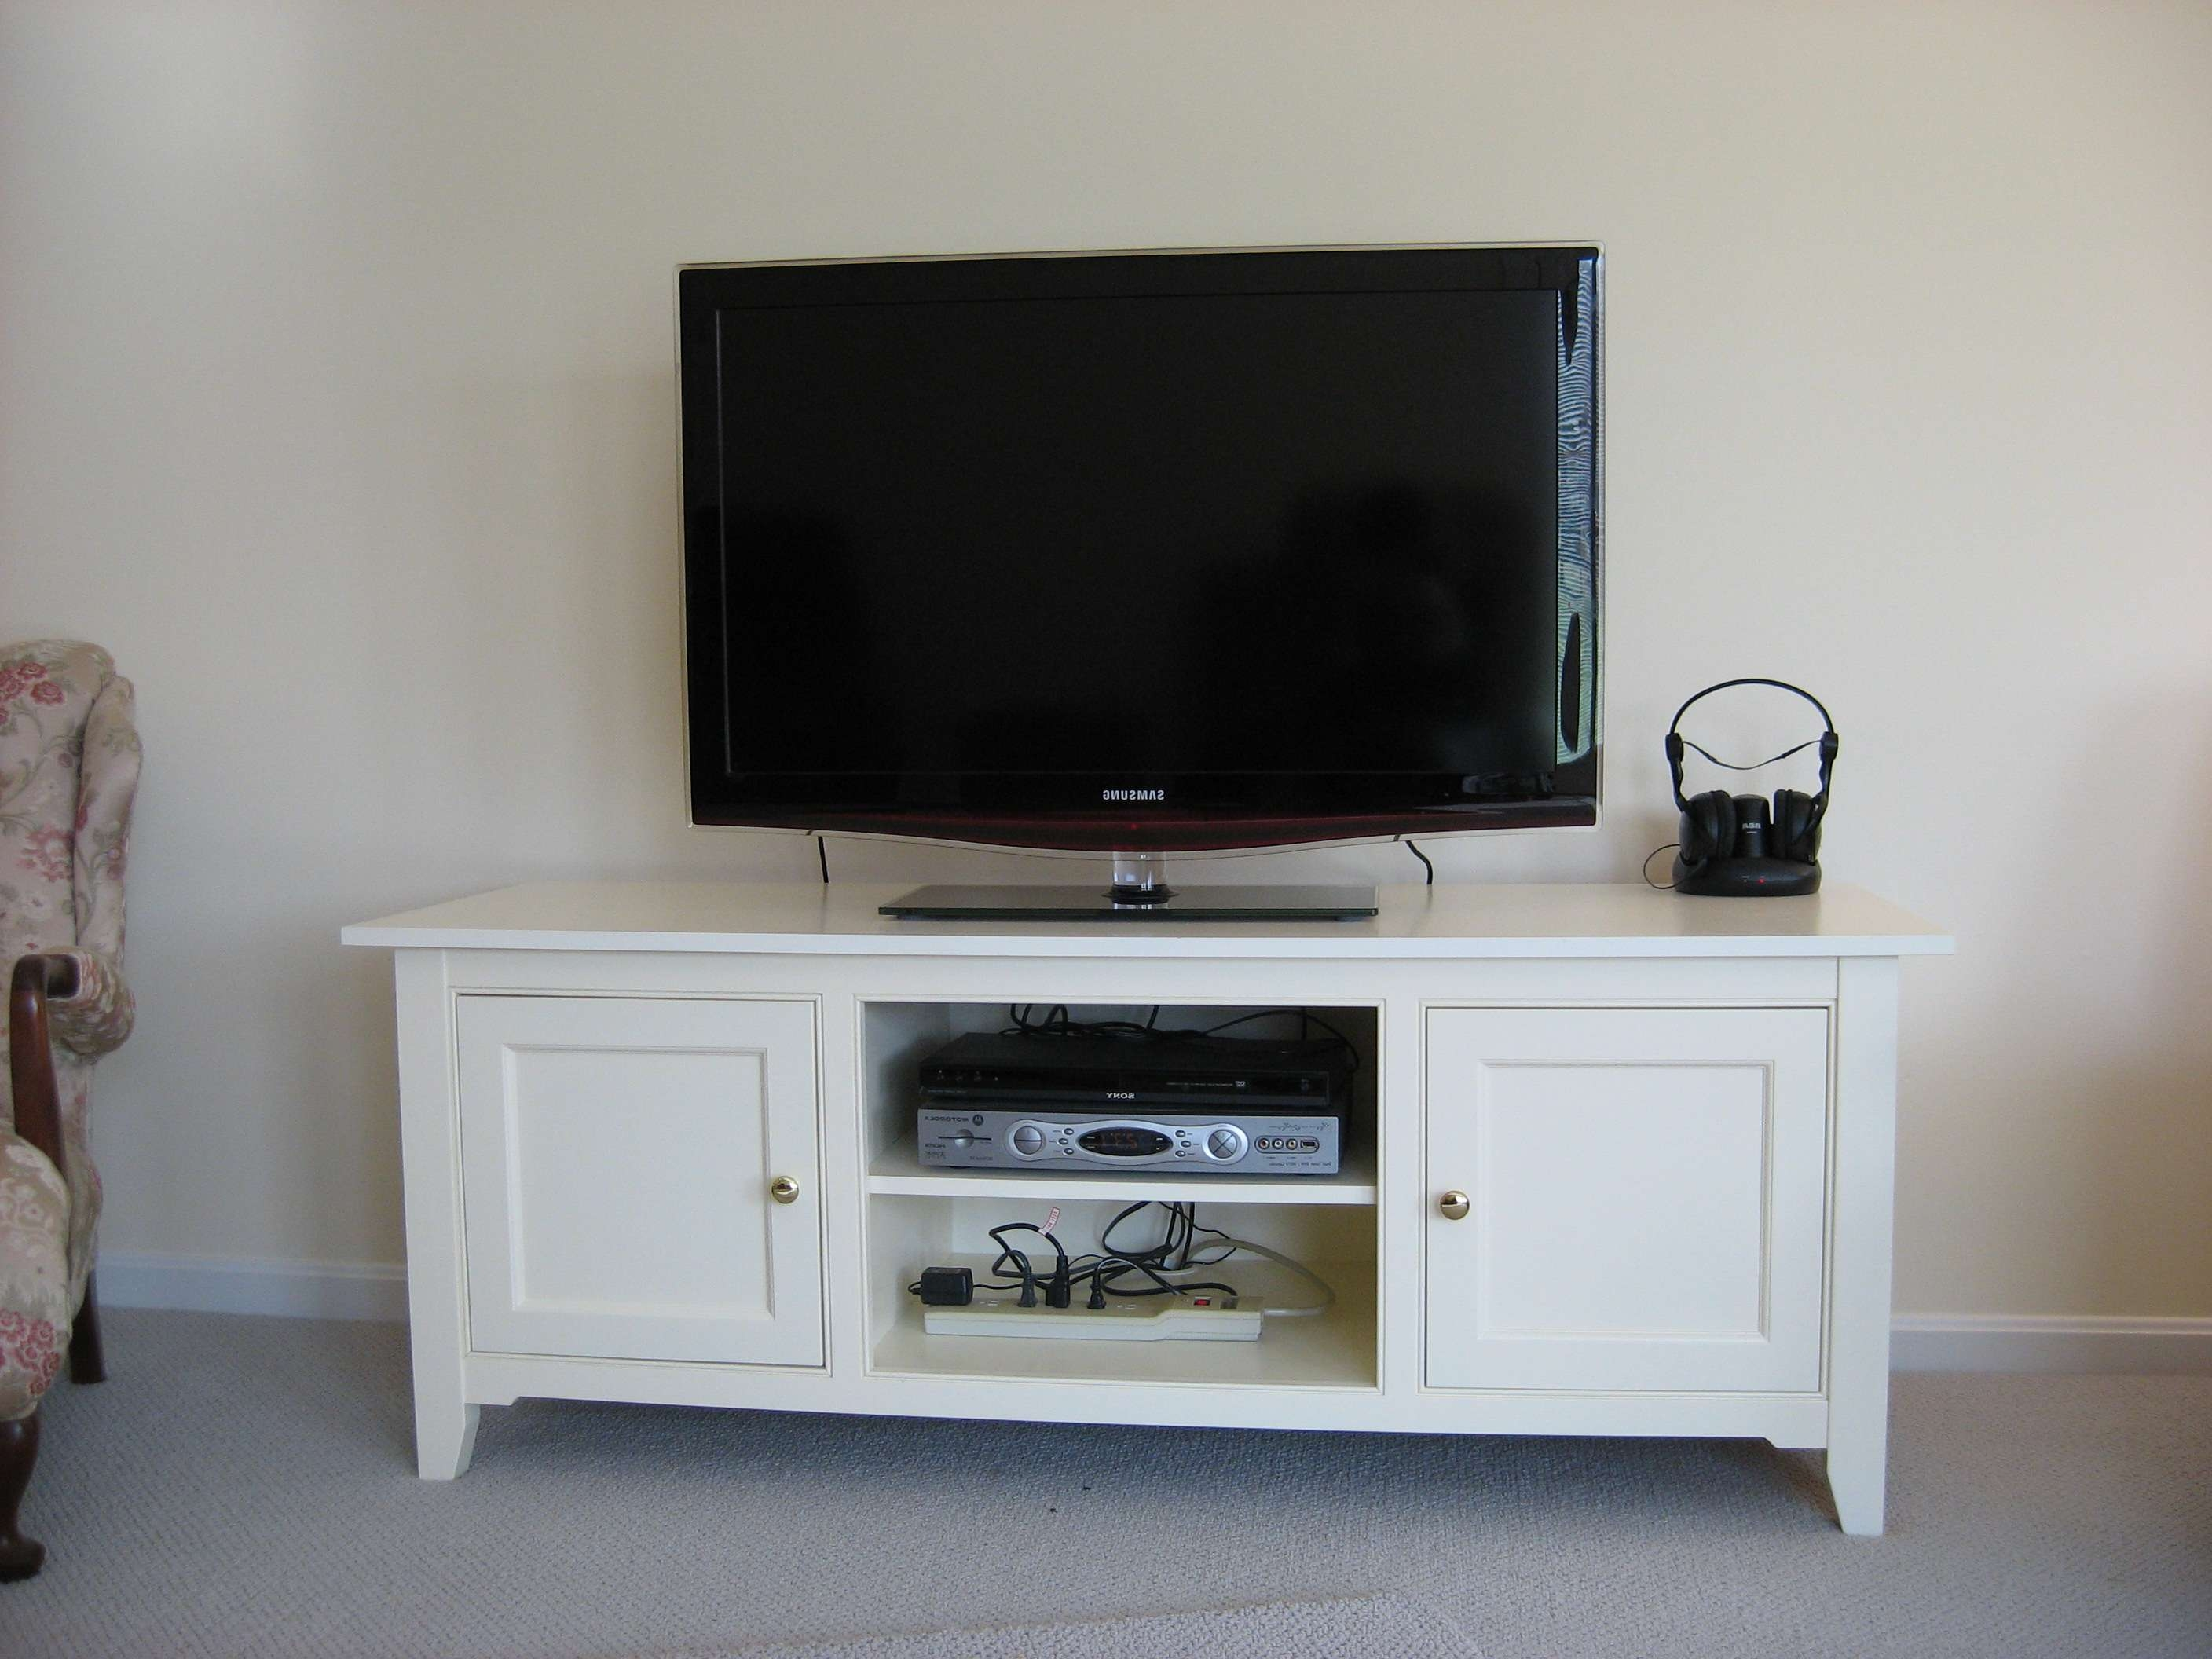 Images About Tv And Built Ins On Pinterest Corner Stands Cabinets Intended For White Painted Tv Cabinets (View 4 of 20)